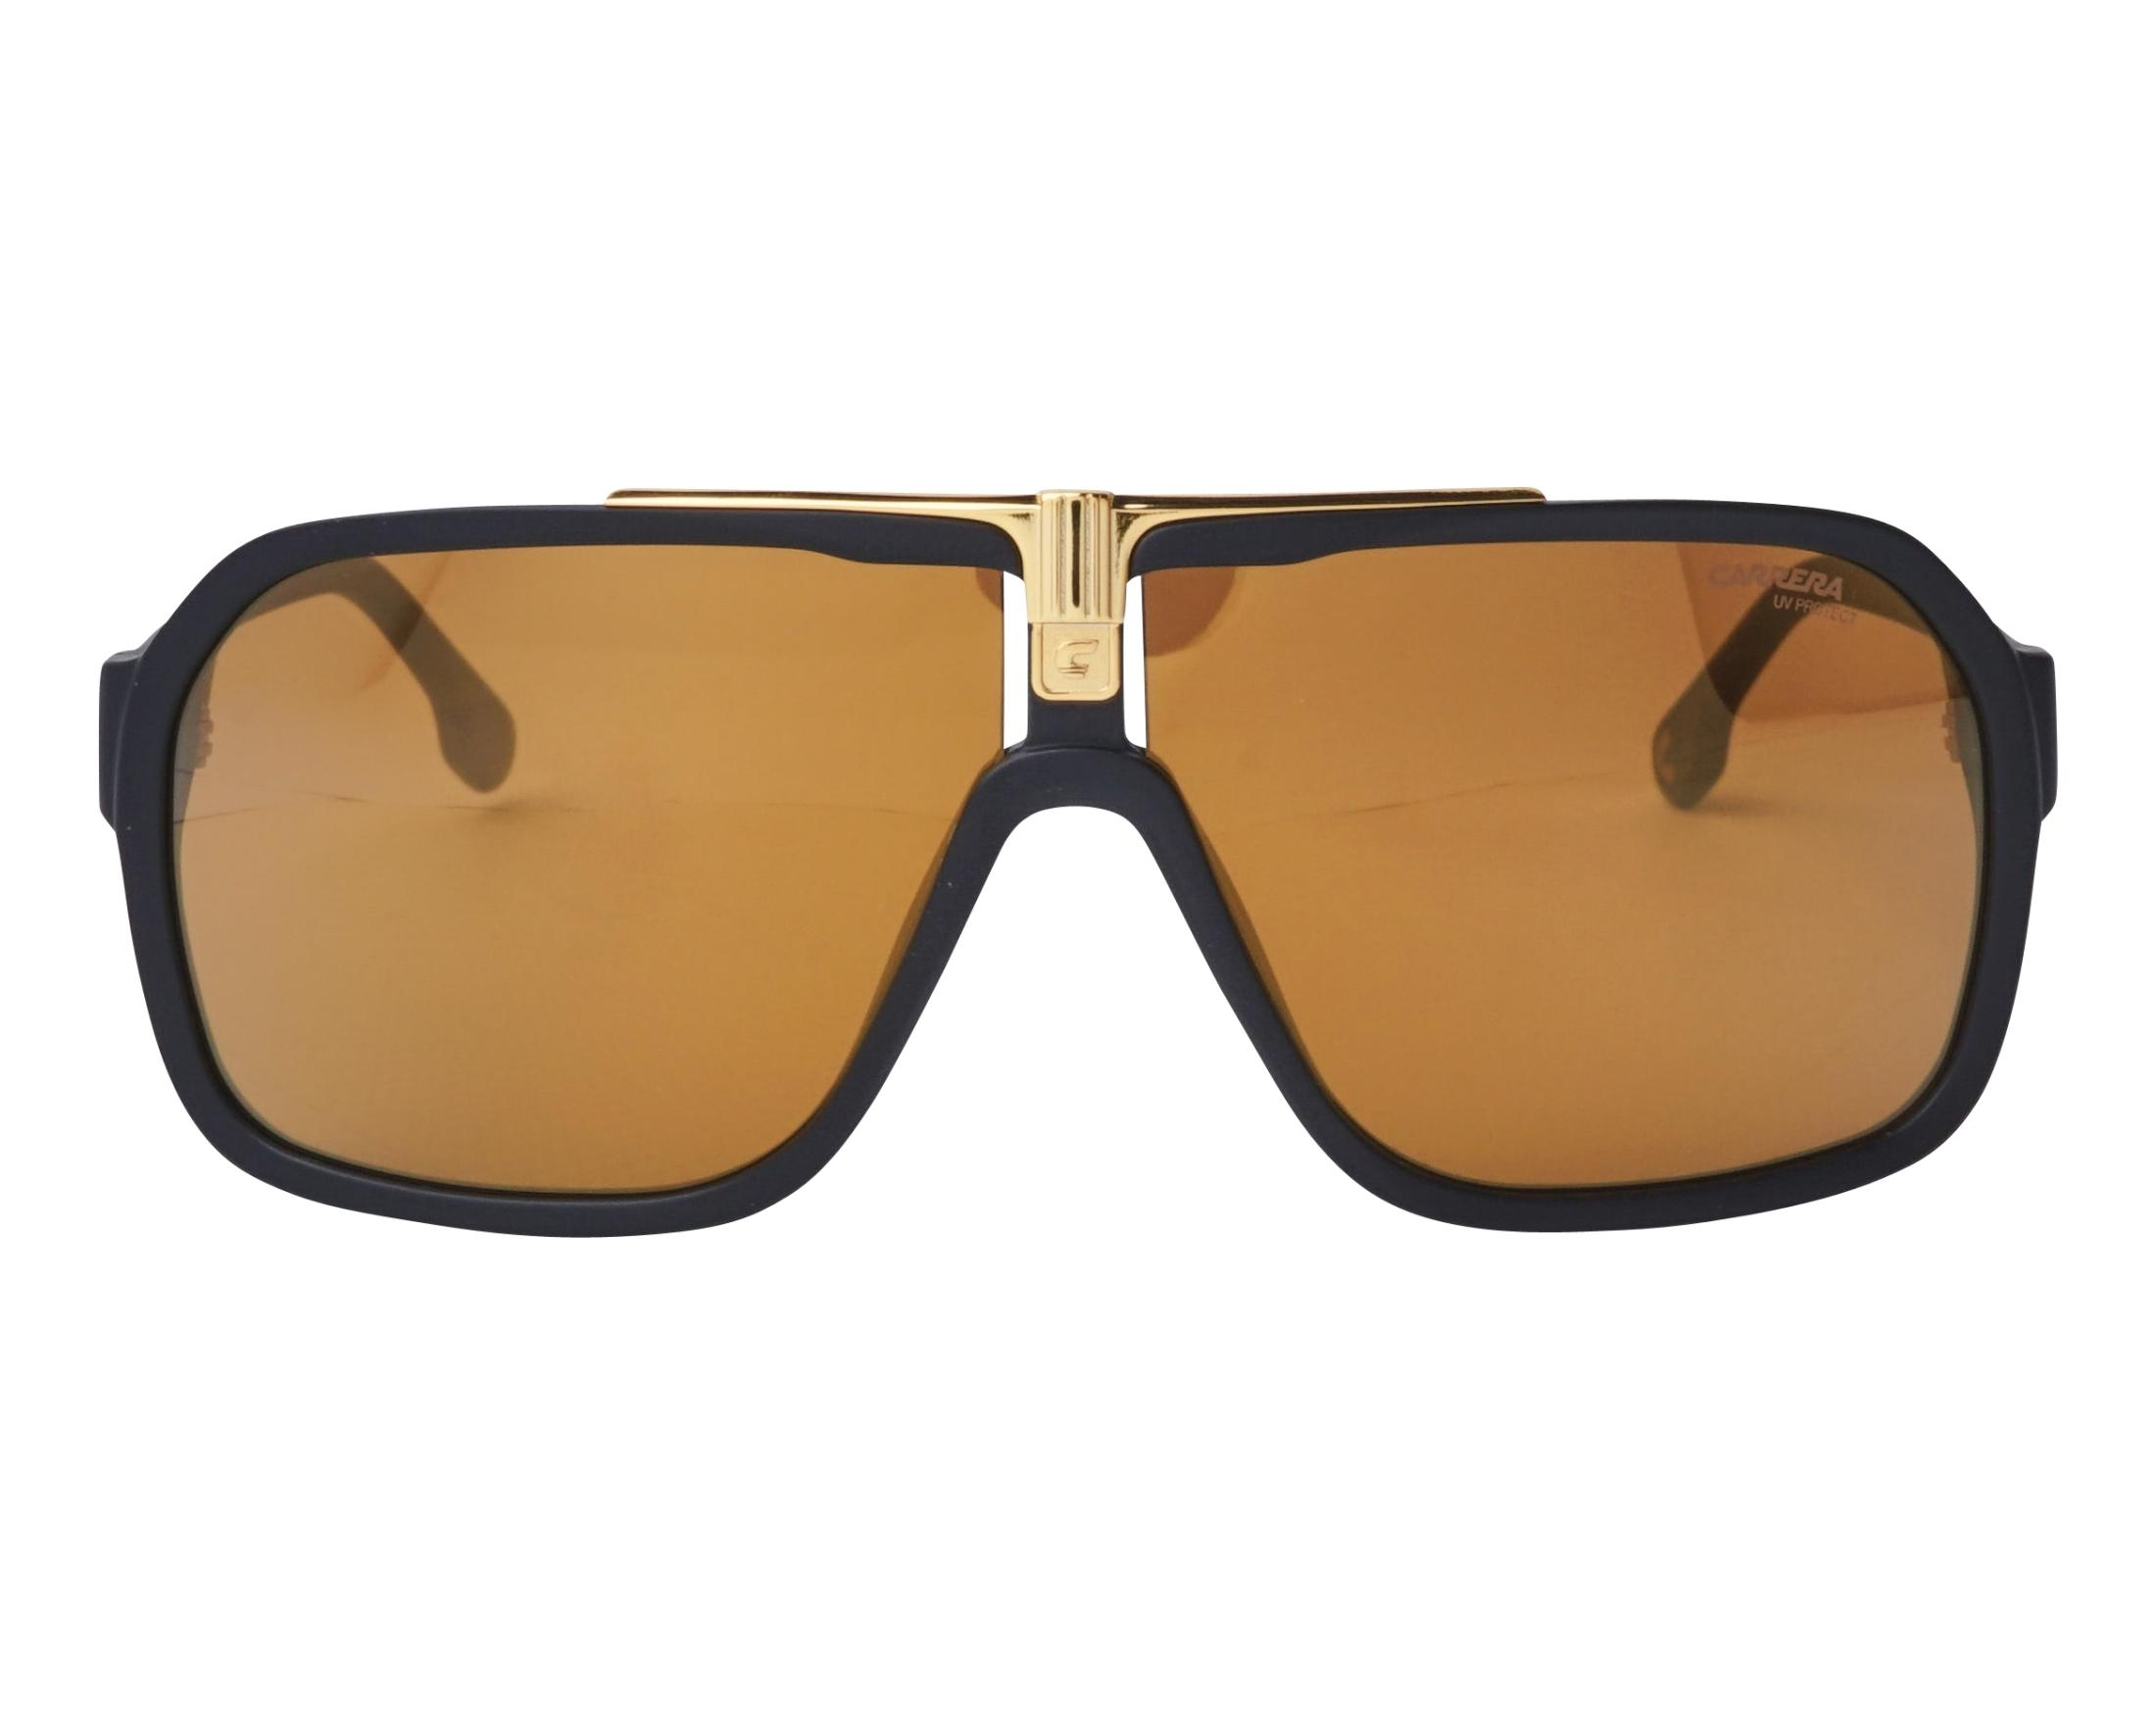 b3db13ea2 Sunglasses Carrera 1014-S I46K1 64-10 Black Gold front view